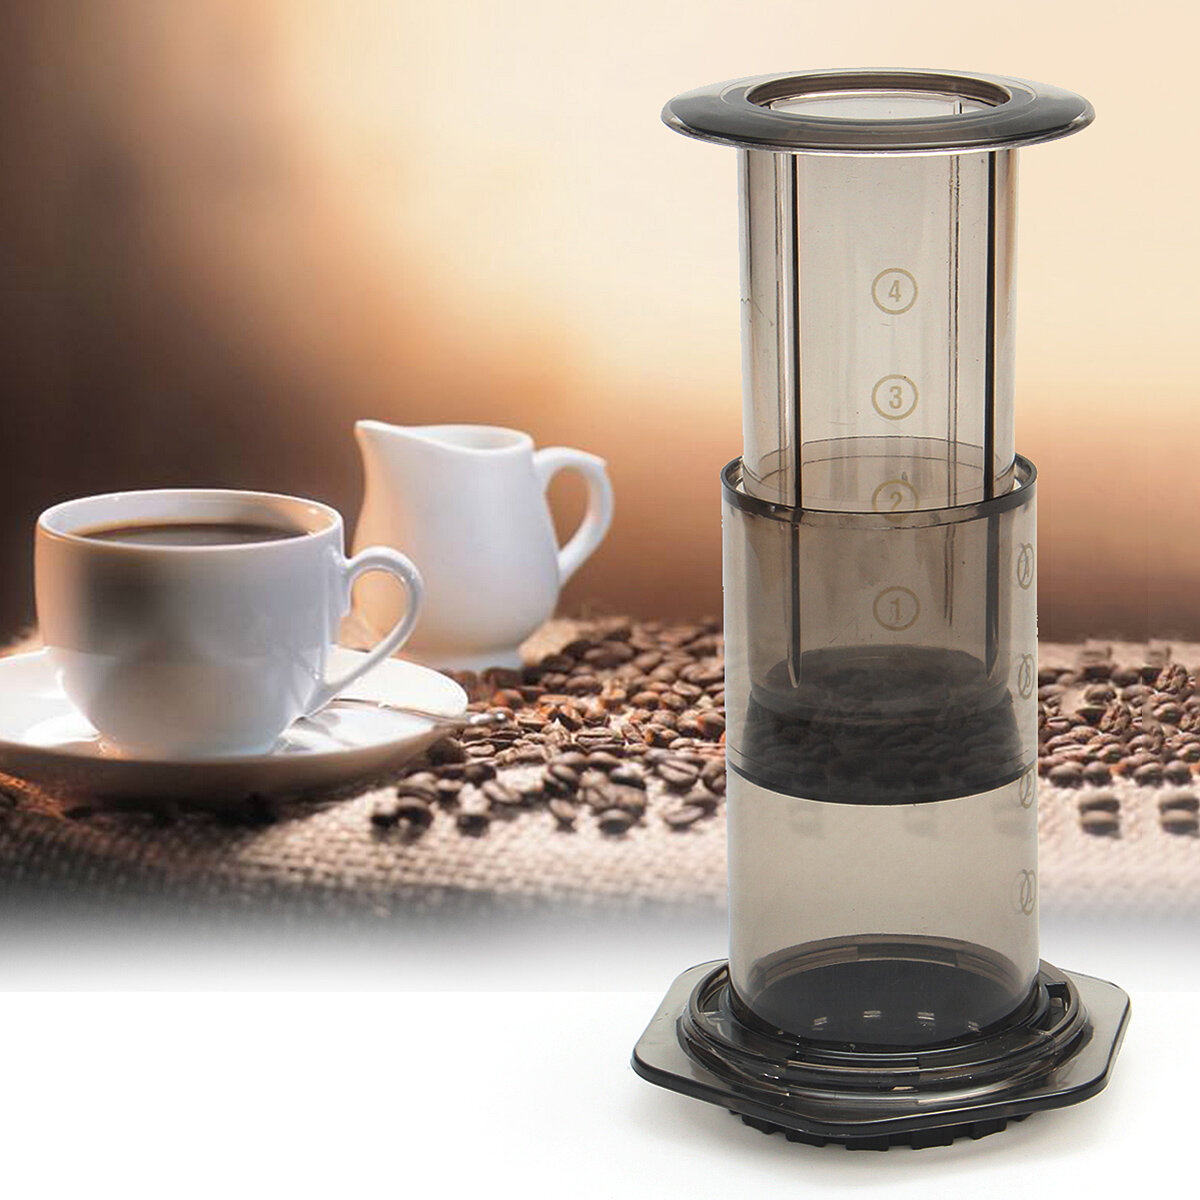 Portable Filter Press Coffee Maker Pot Hand Pressure Machine Free Filter Paper